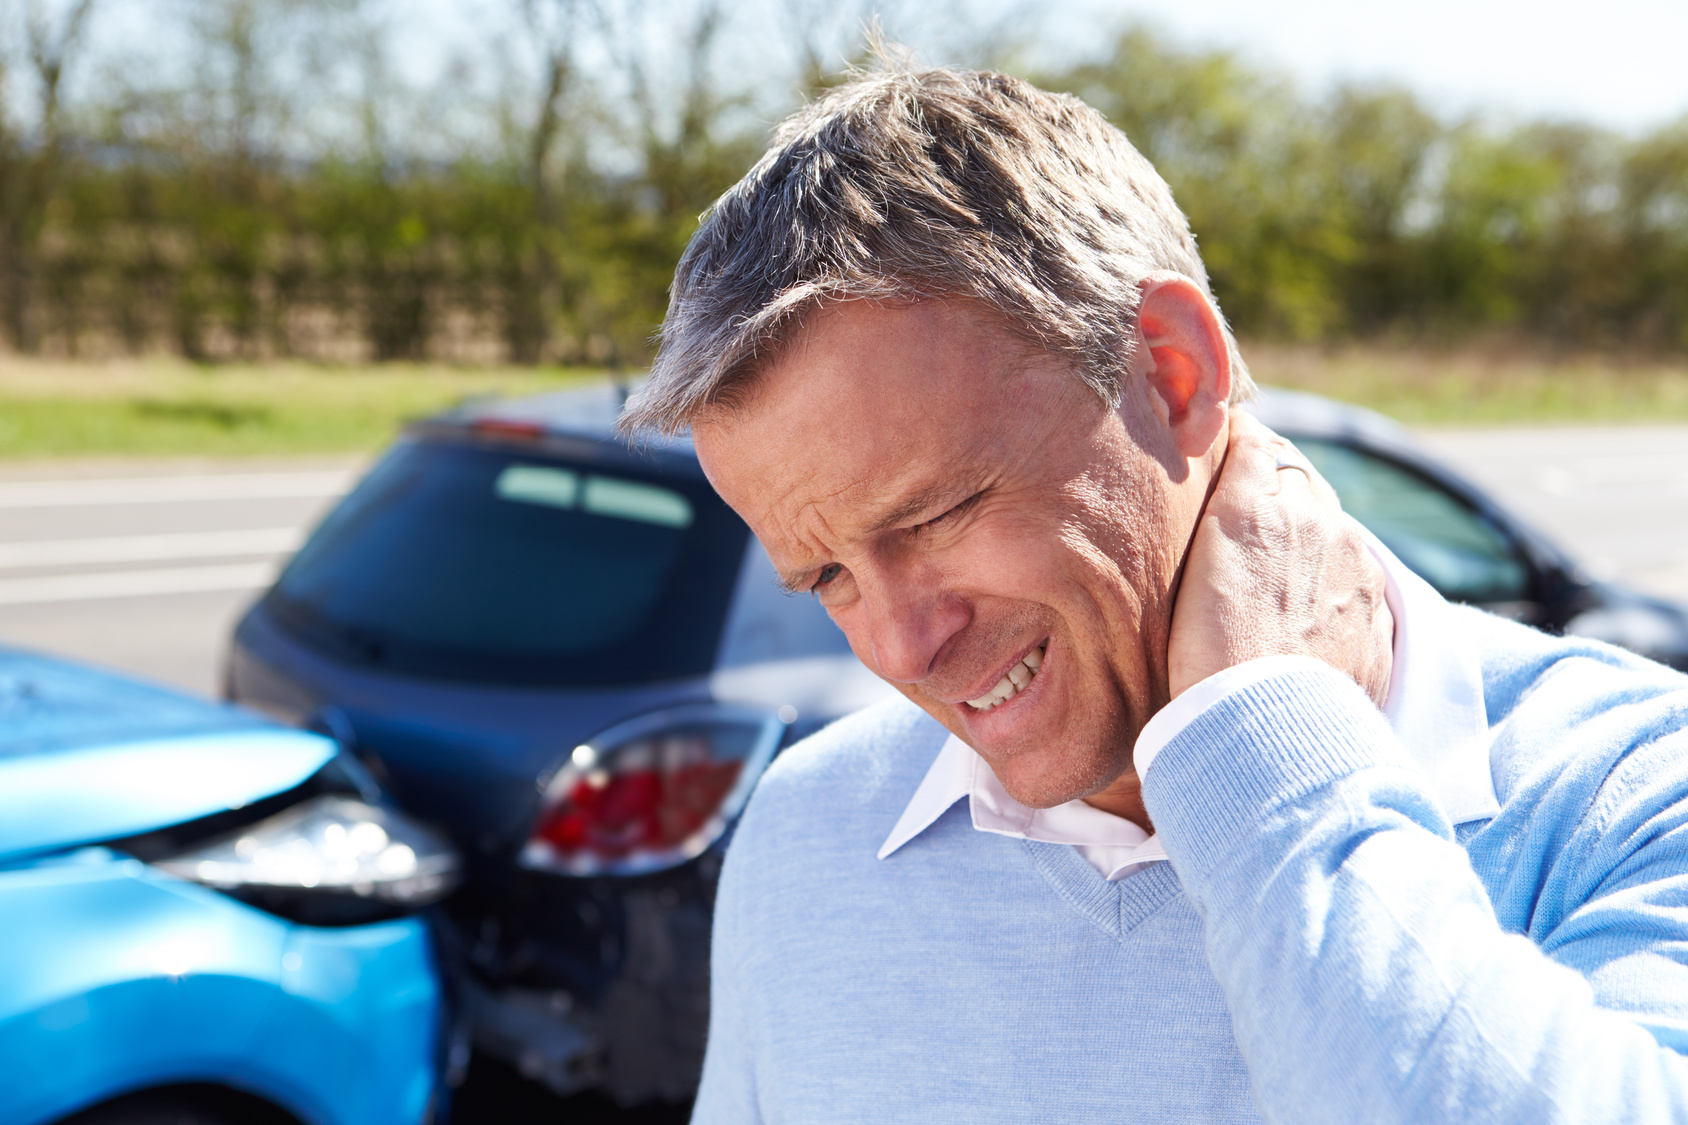 Best physical therapy - Best Physical Therapy Services For Auto Accident And Work Injury Related Injuries Jpg